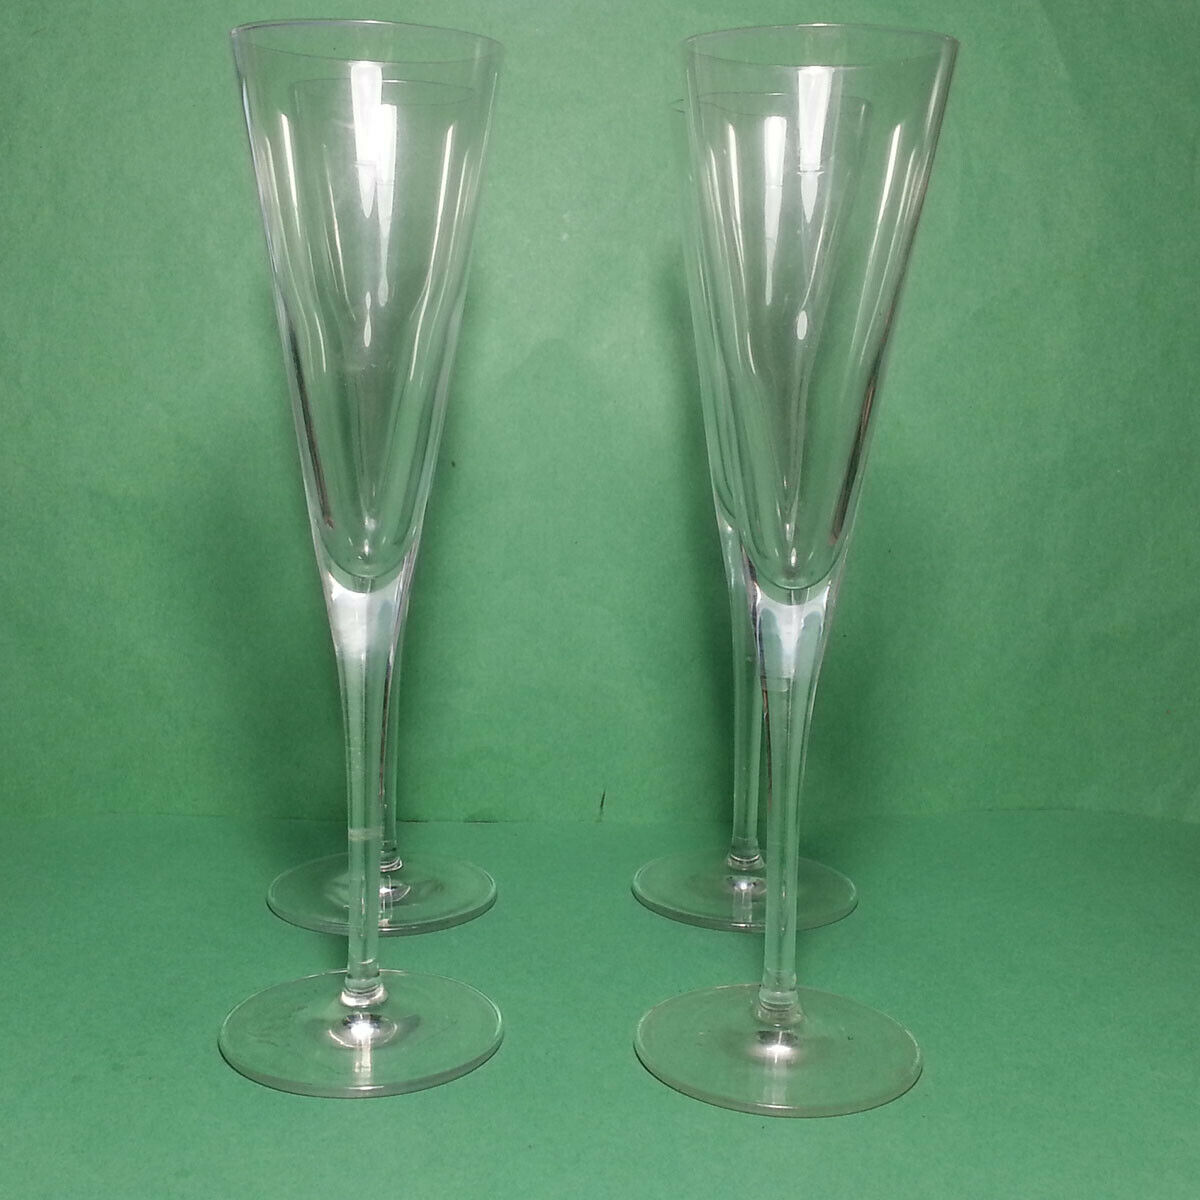 Sale $67.50 https://ebay.to/2Z3sYTC  #Champagne #flute 150ml #crystal Set of 4pic.twitter.com/qvxXLSM7e6